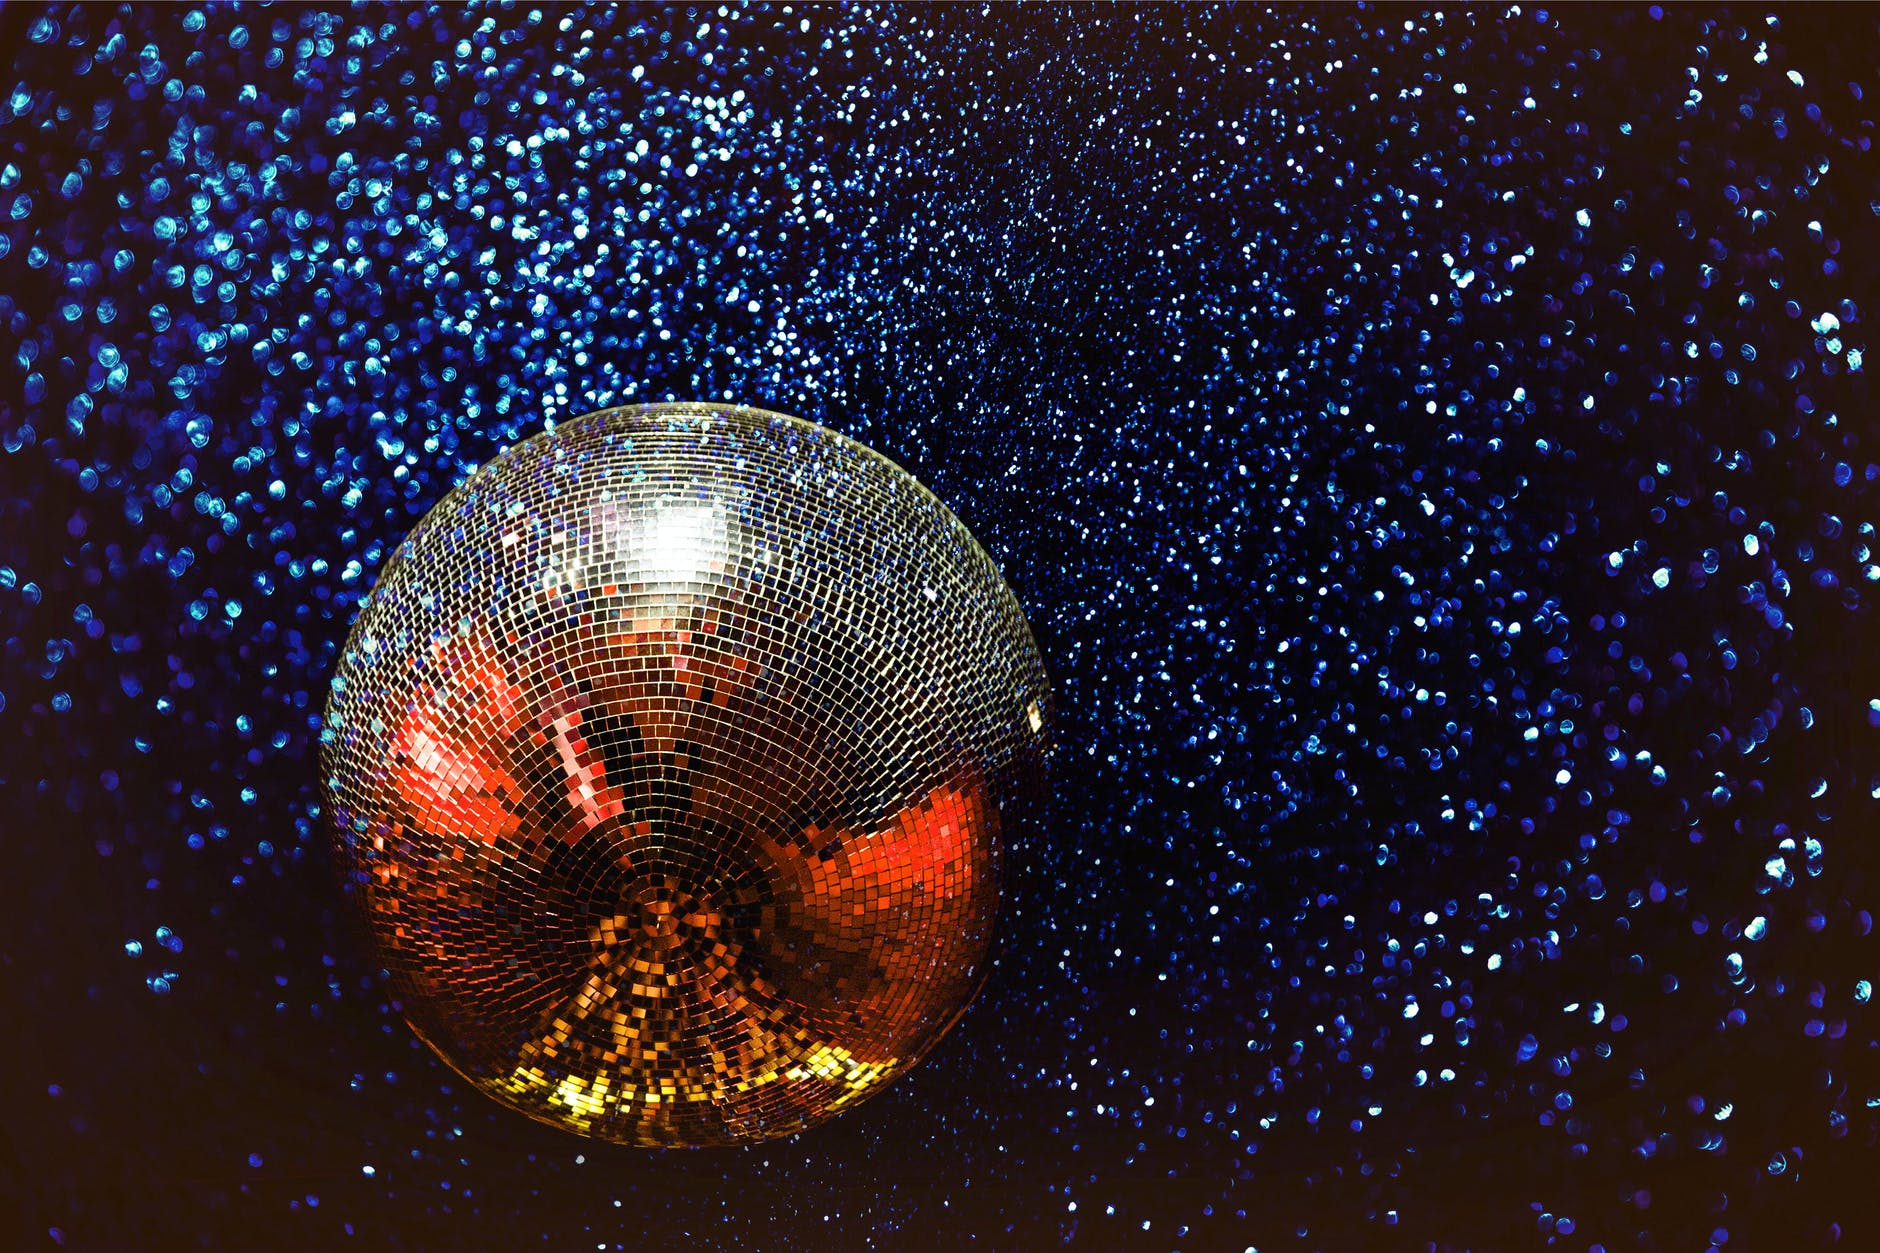 disco ball against sparkly background